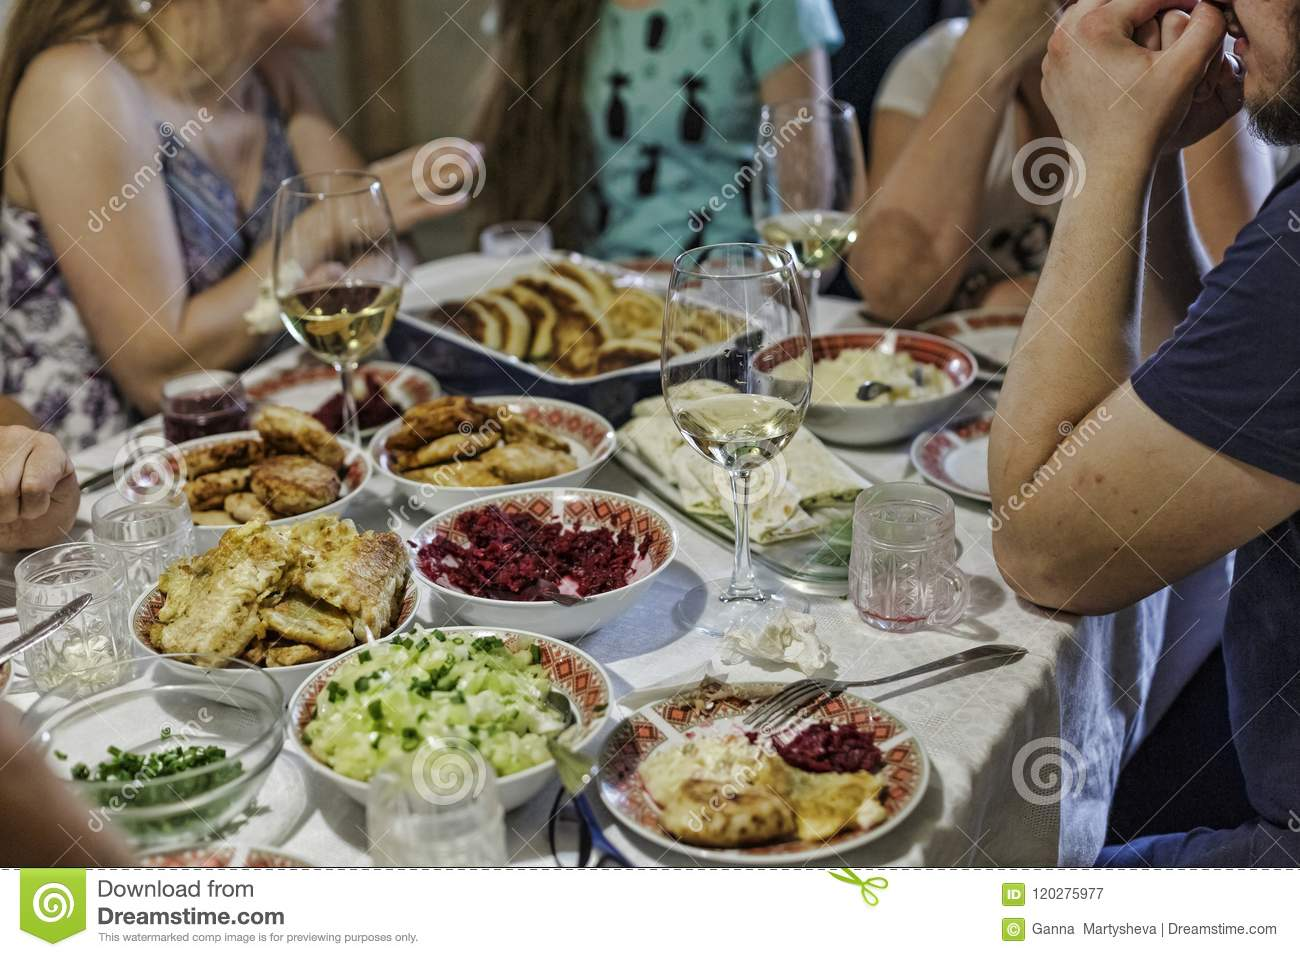 Dinner, family, table, feast, food, gathering, group, meal, party, people, celebration, Birthday, Thanksgiving, Christmas, New Yea